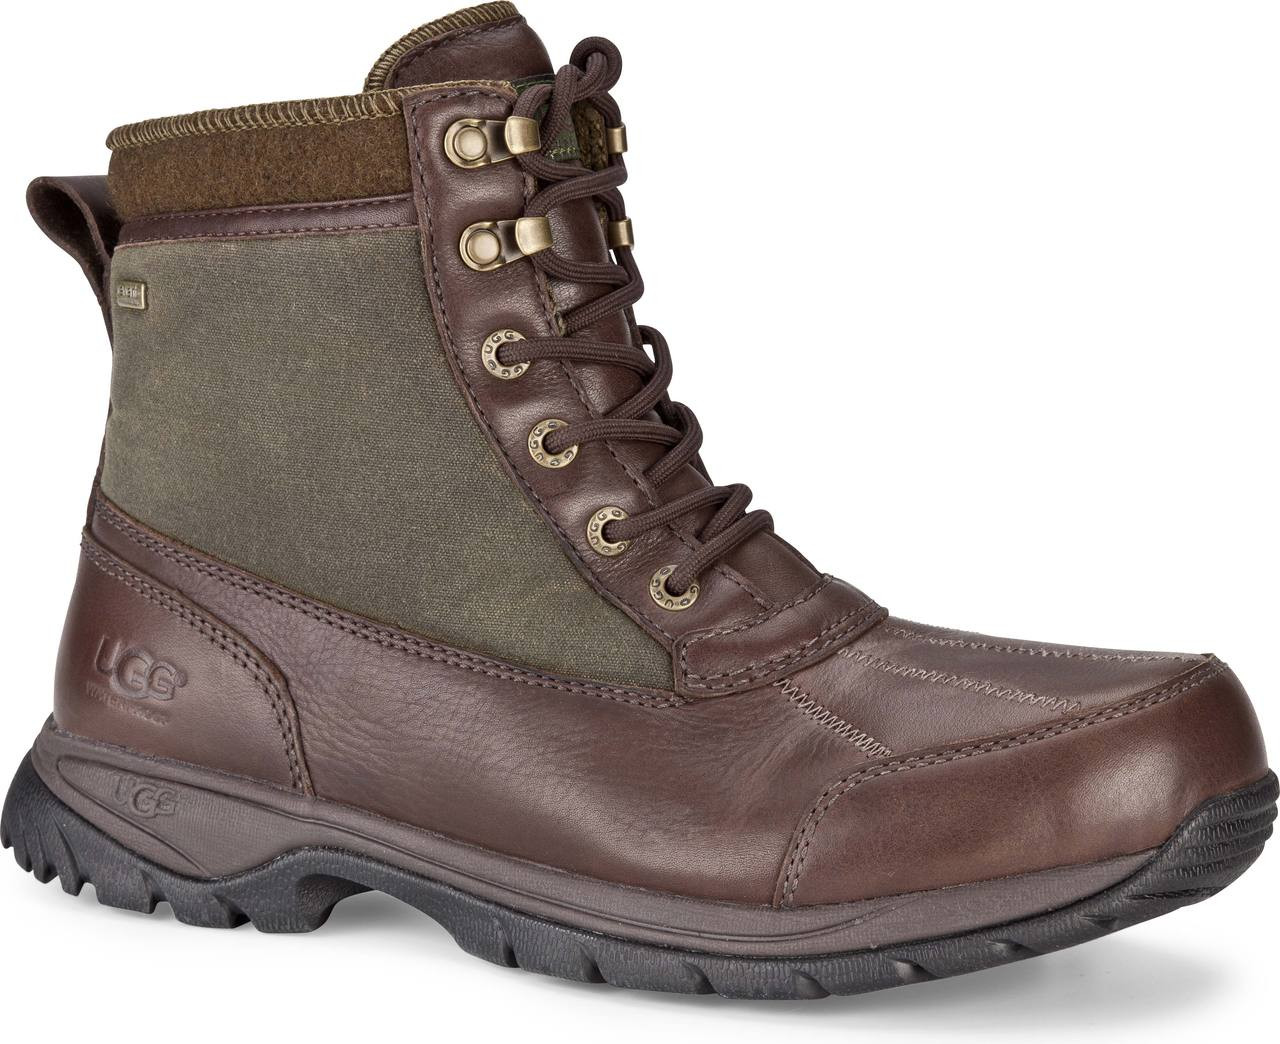 ... Casual Boots; UGG Australia Men's Eaglin, Stout. Stout